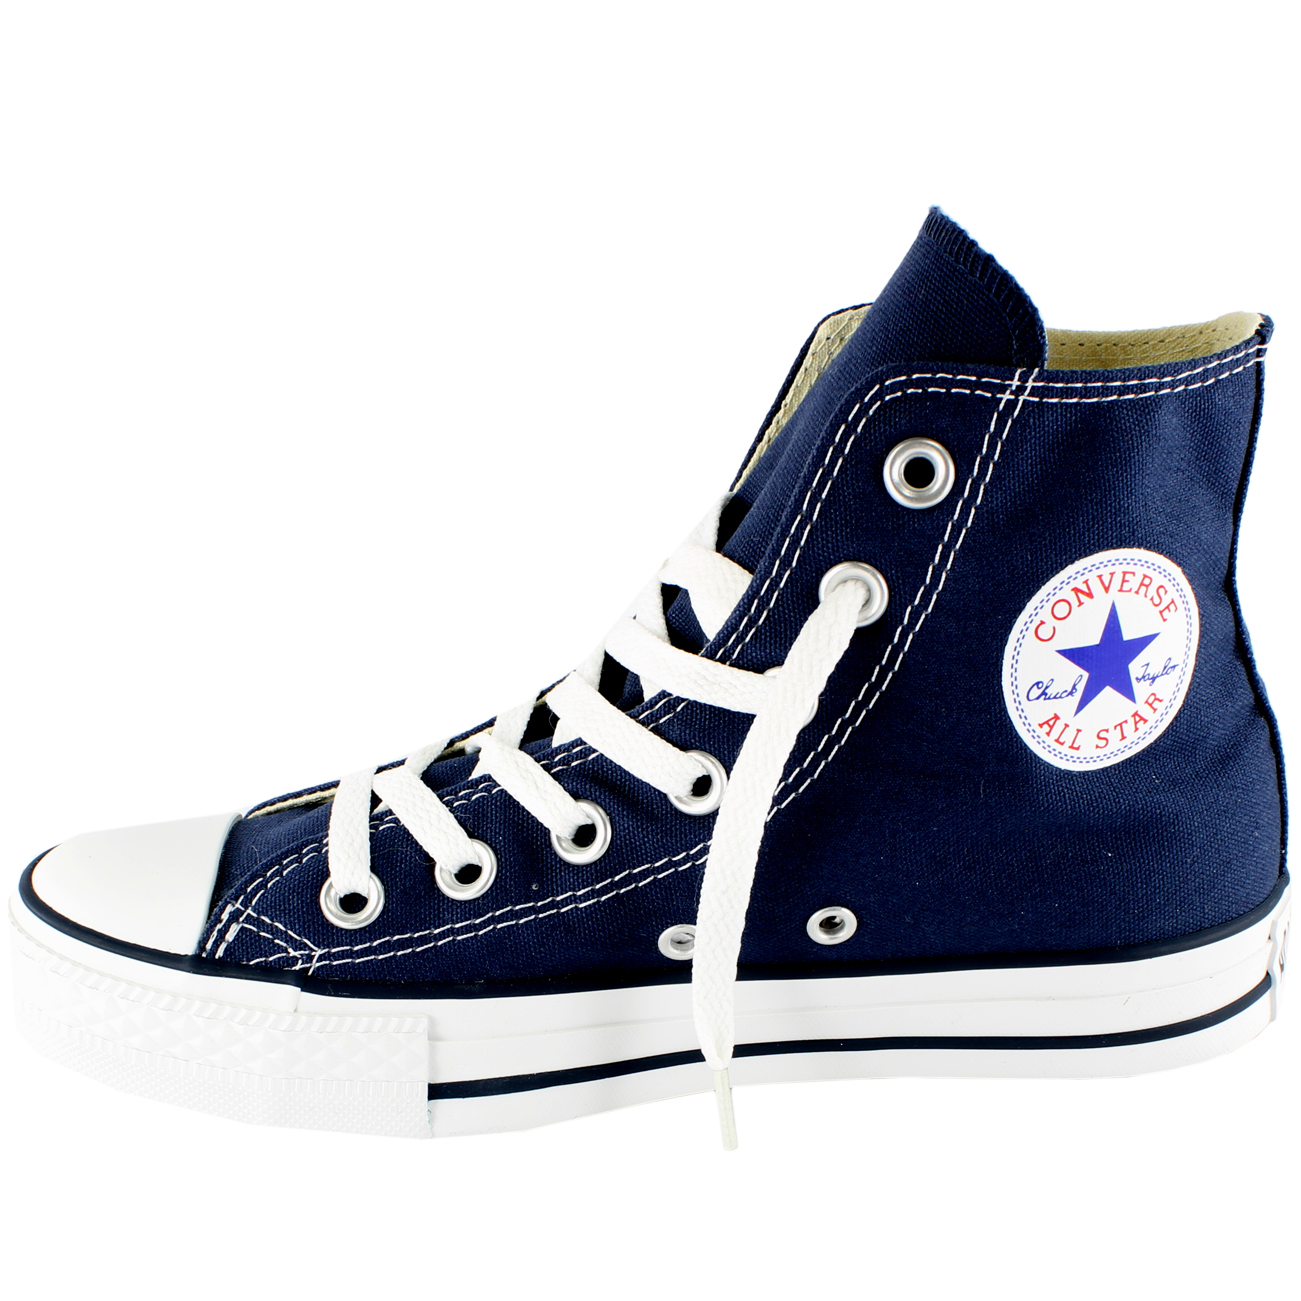 Mujeres Converse All Star Hi High Top Chuck Taylor Chucks Entrenadores UK Tamaños 3-9